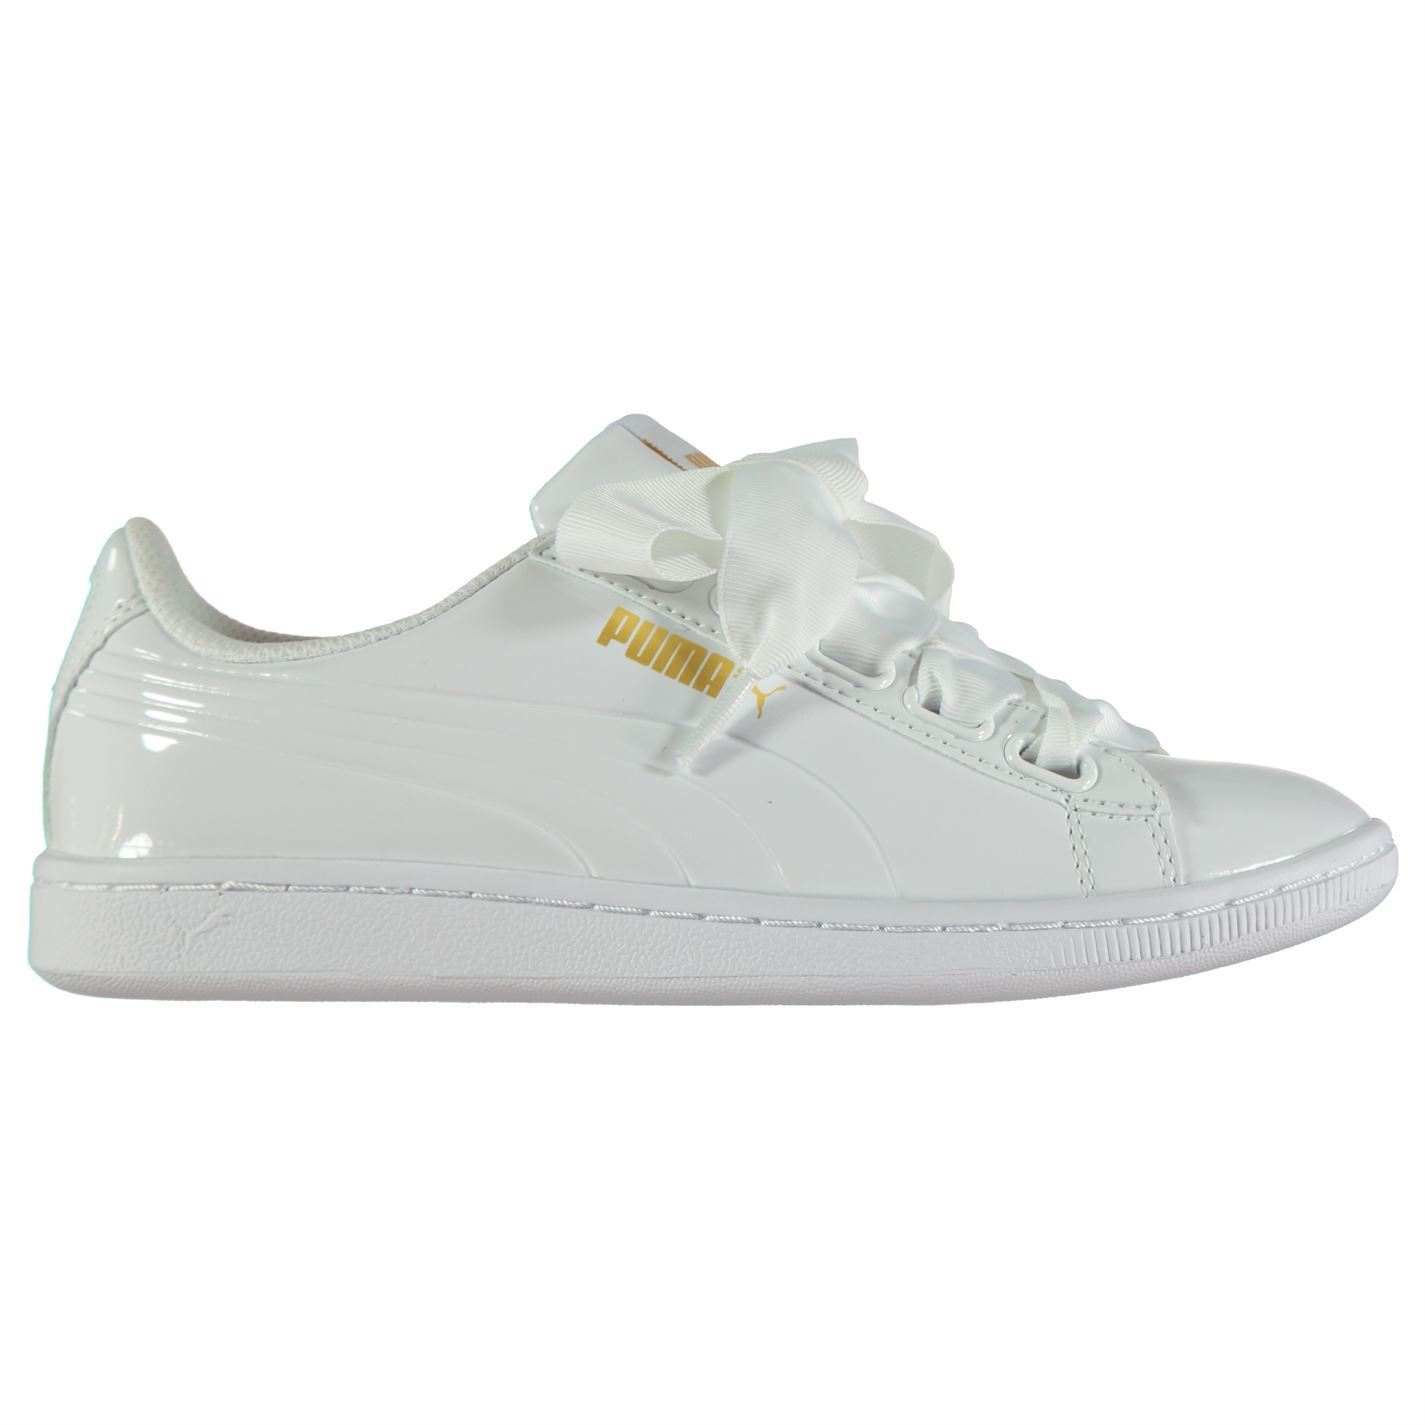 ... Puma Vikky Ribbon Trainers Womens Wht Sports Trainers Sneakers ... a5629cf46